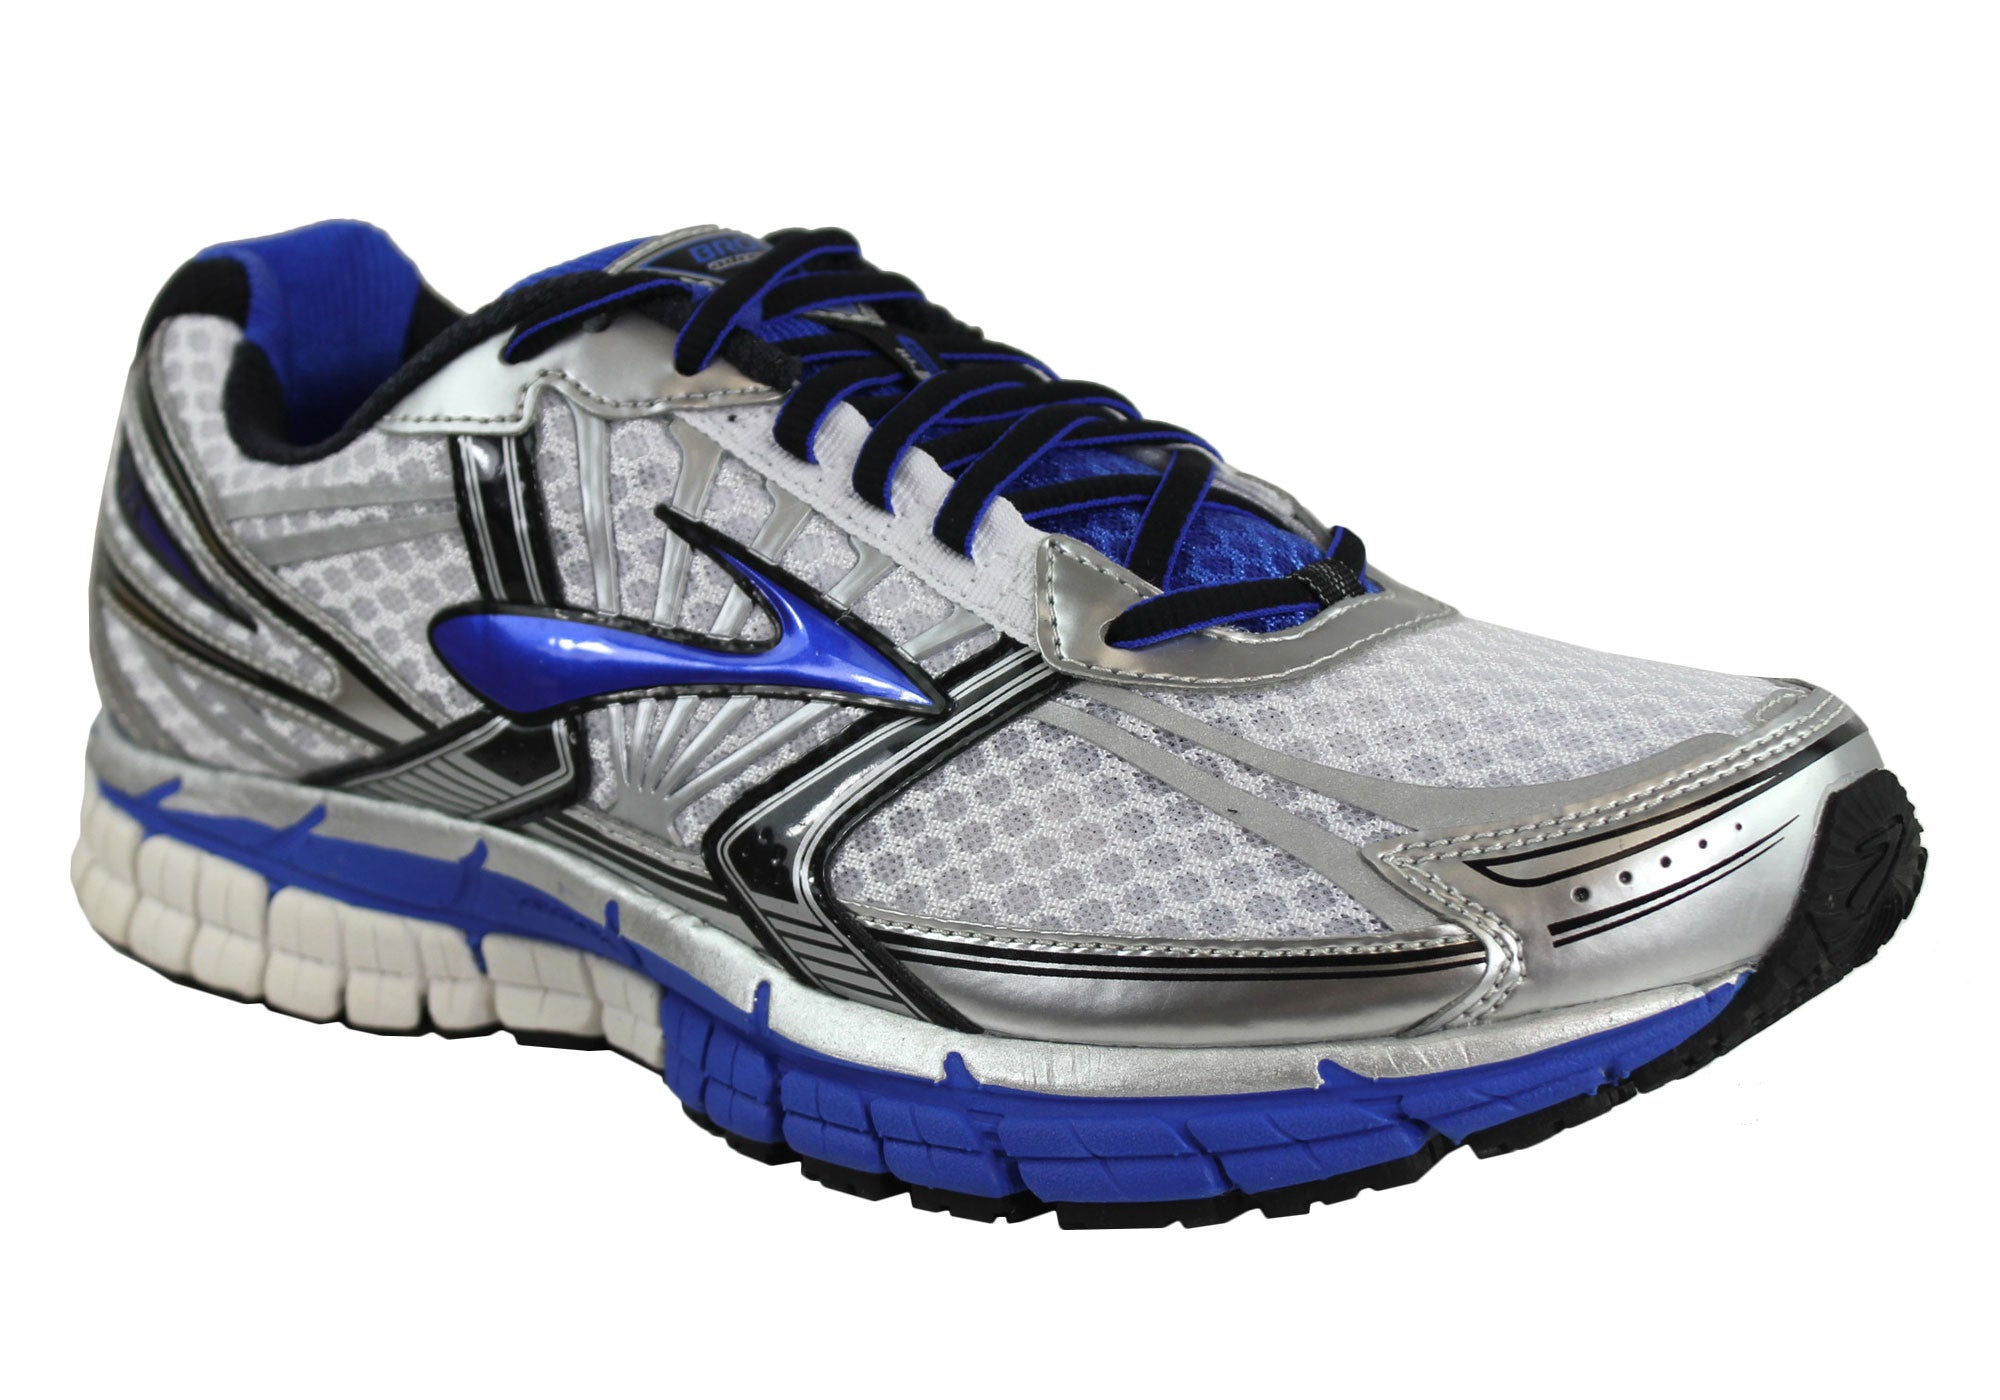 Brooks Mens Adrenaline GTS 14 Running Shoes (Wide 2E Width)